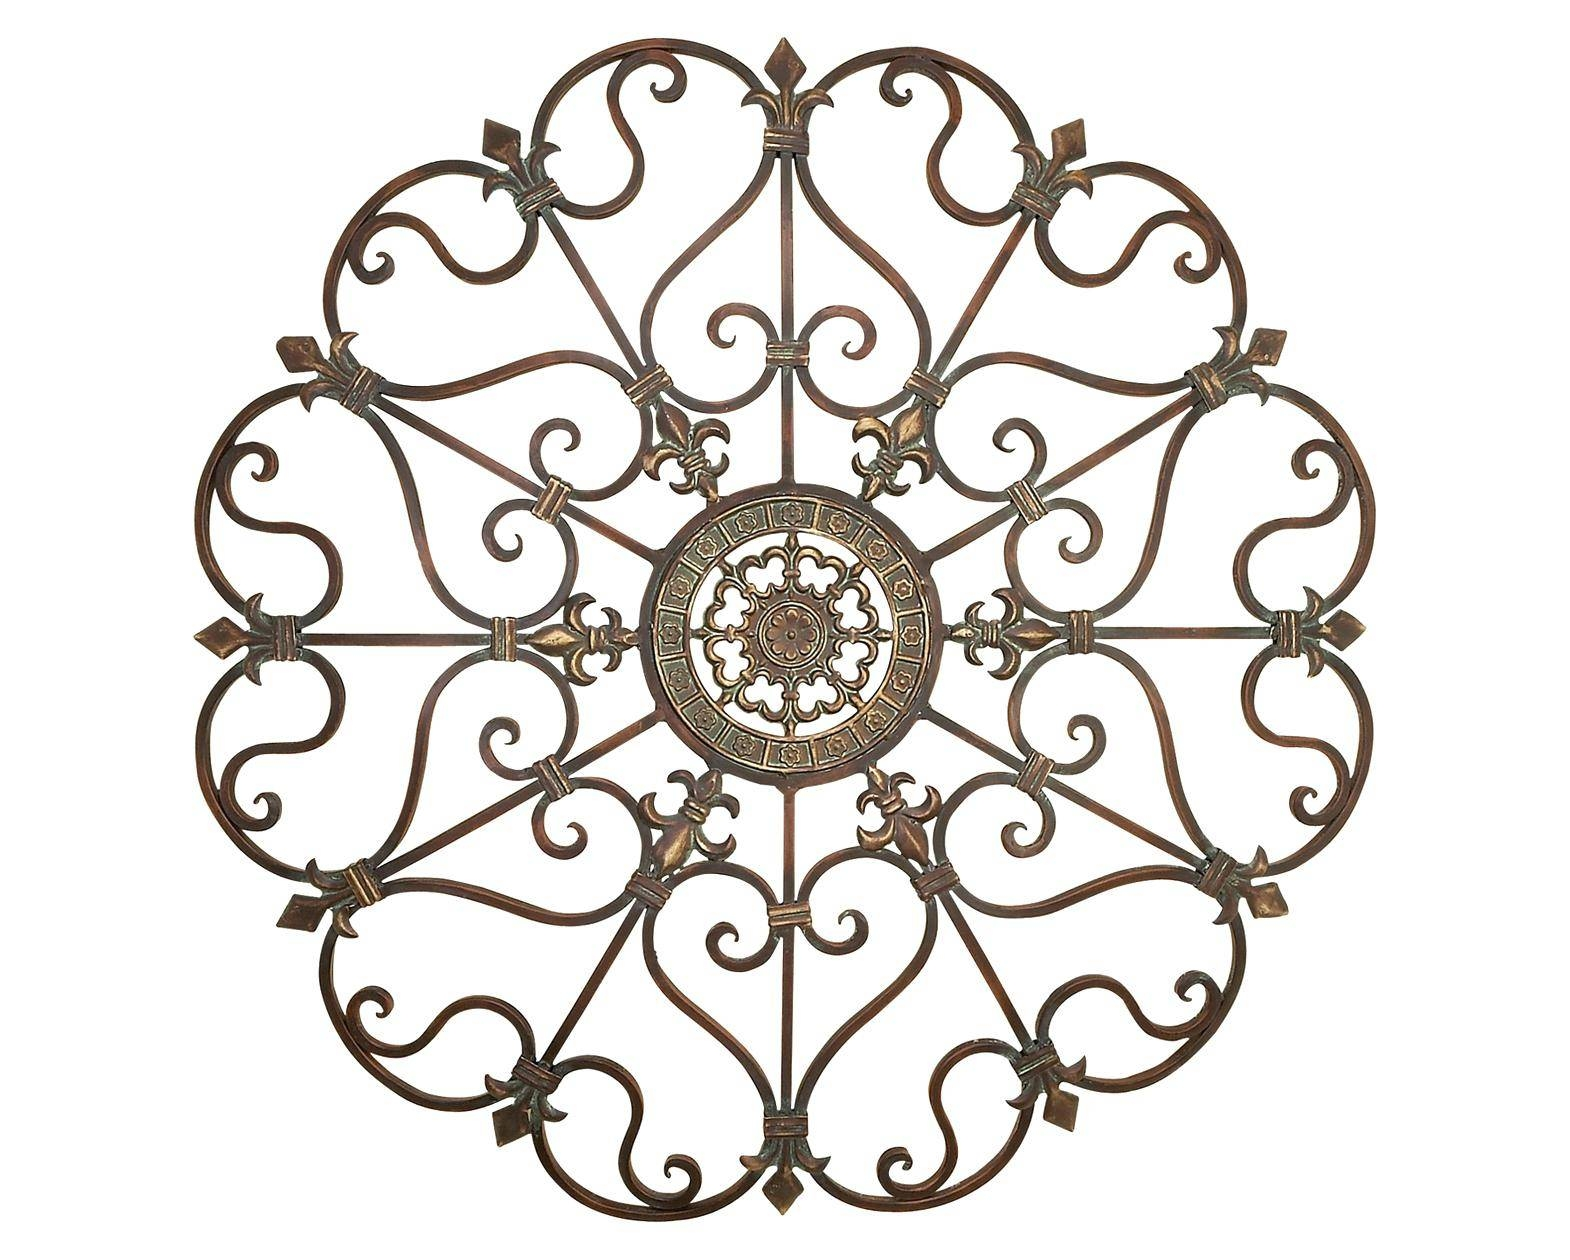 Wall Decor : Bright Wrought Iron Decorative Wall Panels 2 Xl Pertaining To Recent Iron Gate Wall Art (View 11 of 25)